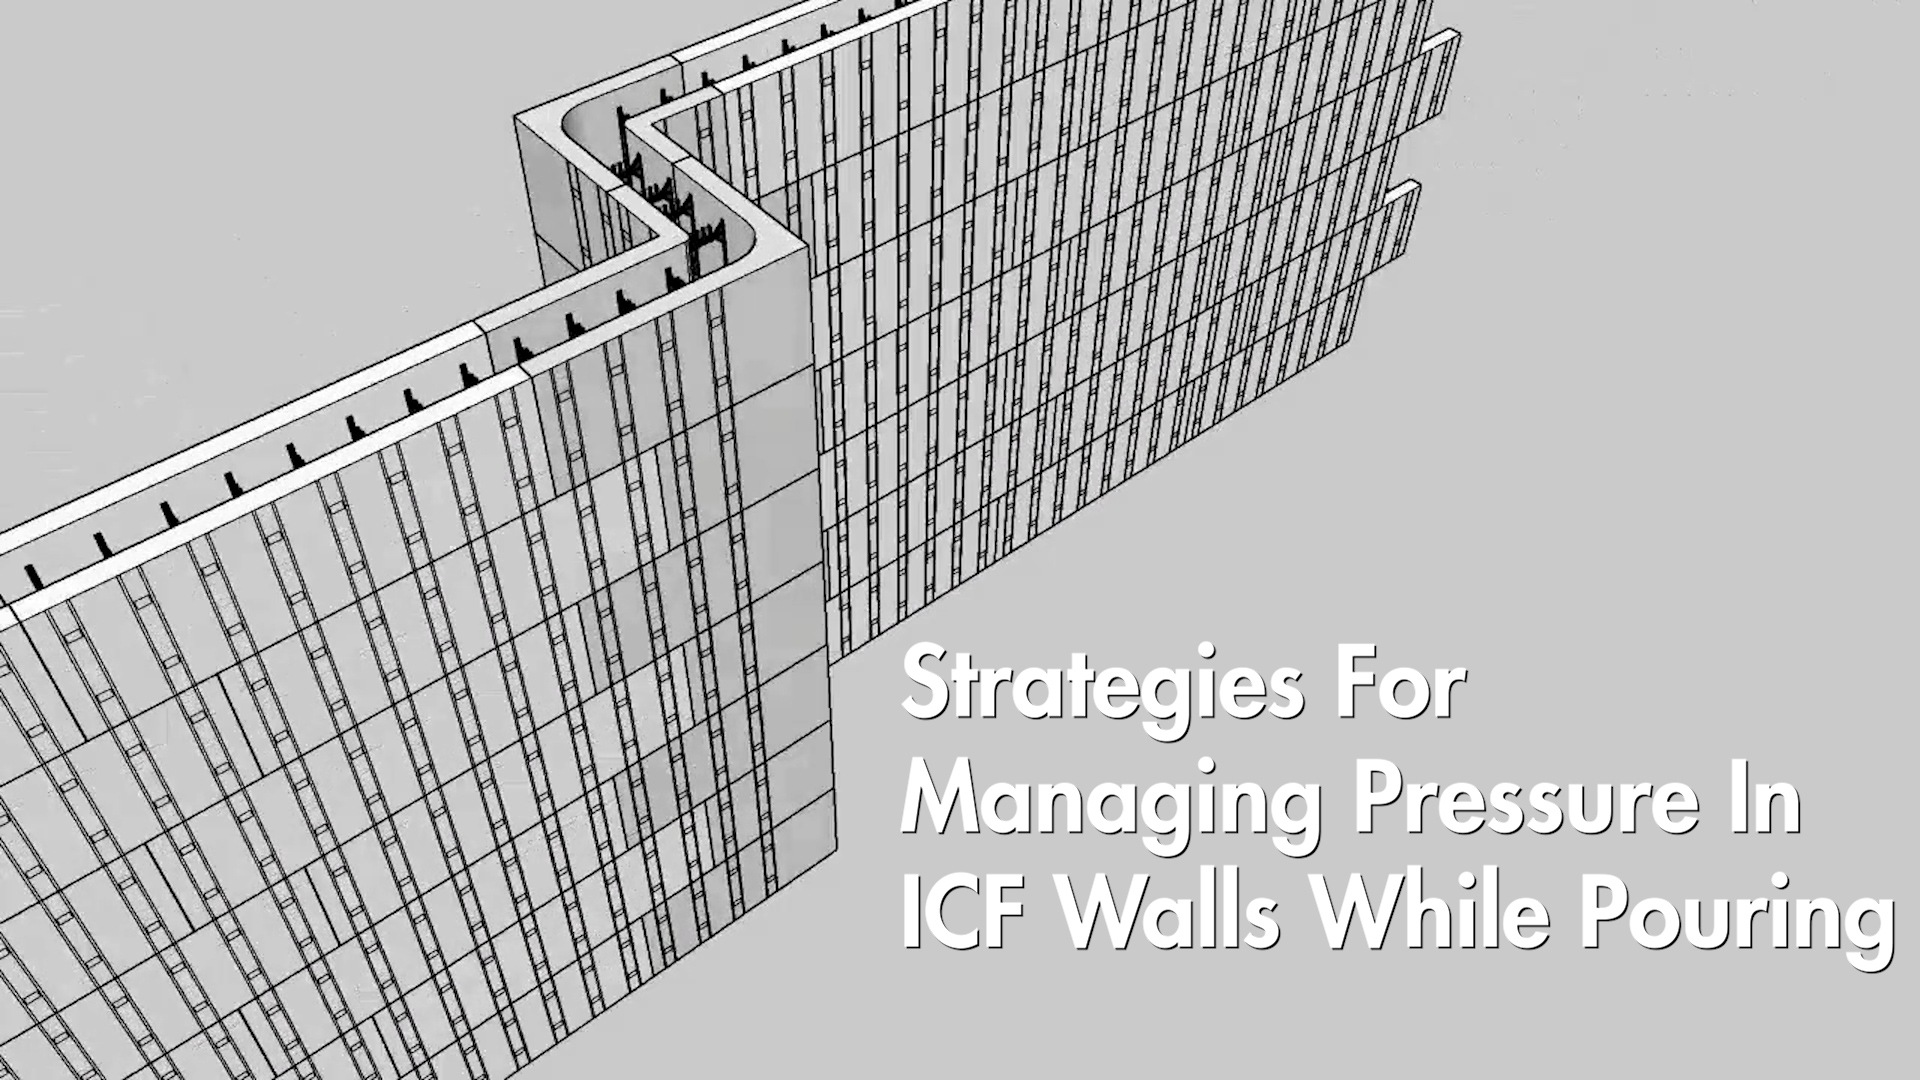 Video: Strategies For Managing Pressure In ICF Walls While Pouring